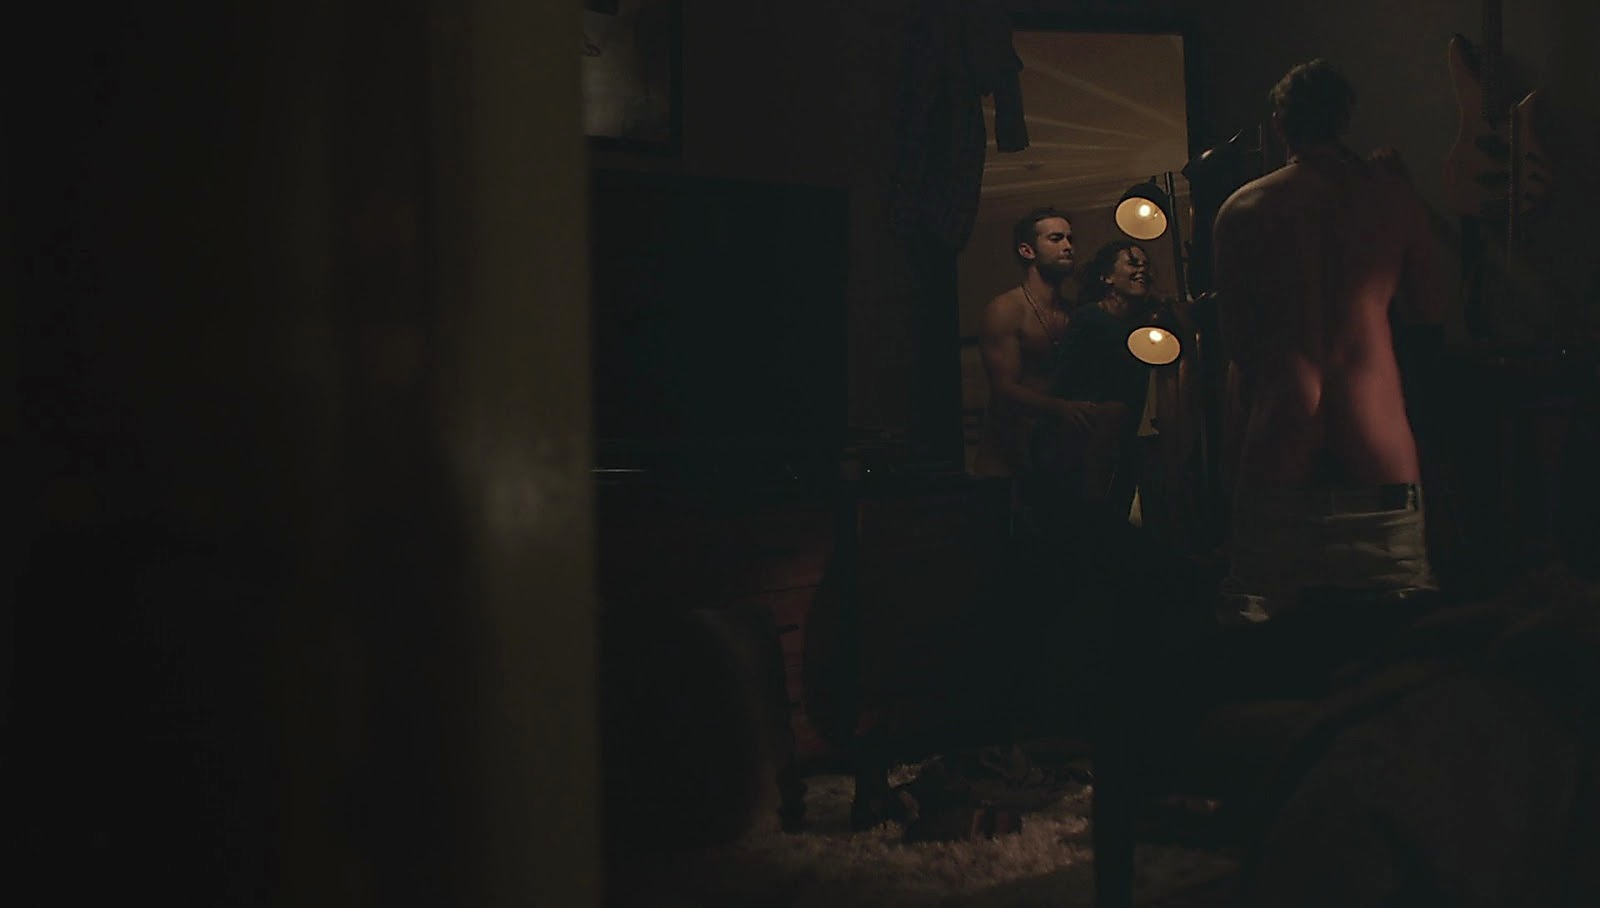 Chace Crawford sexy shirtless scene May 30, 2017, 3am